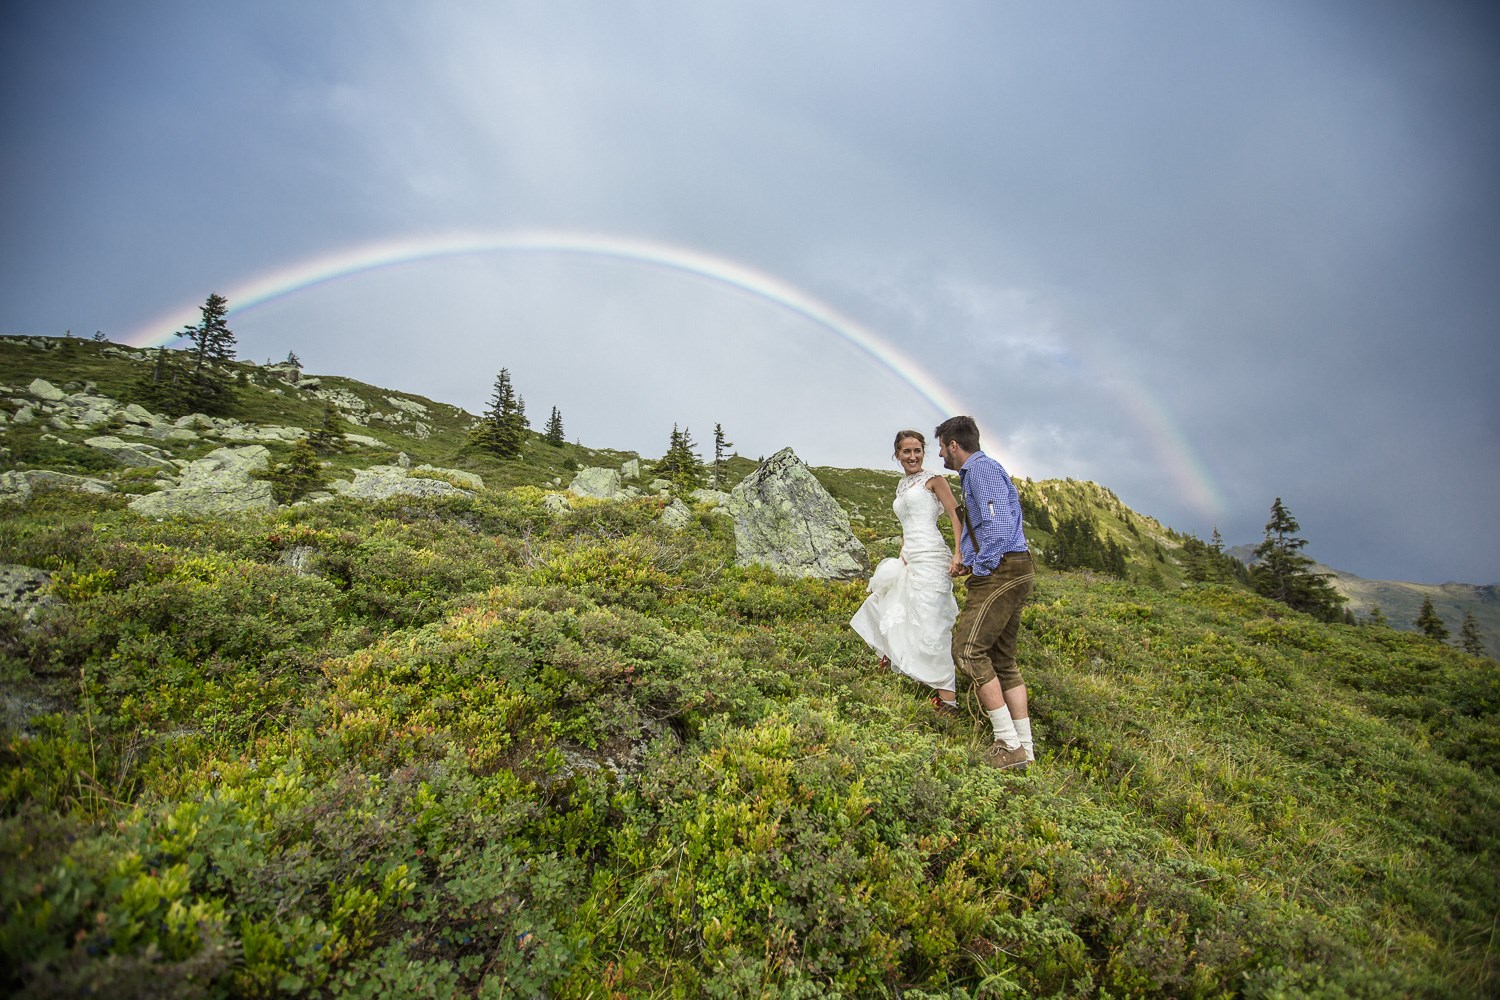 Hochzeitsfotograf: Let´s go there to the rainbow and further. - Stefan Kothner Photography